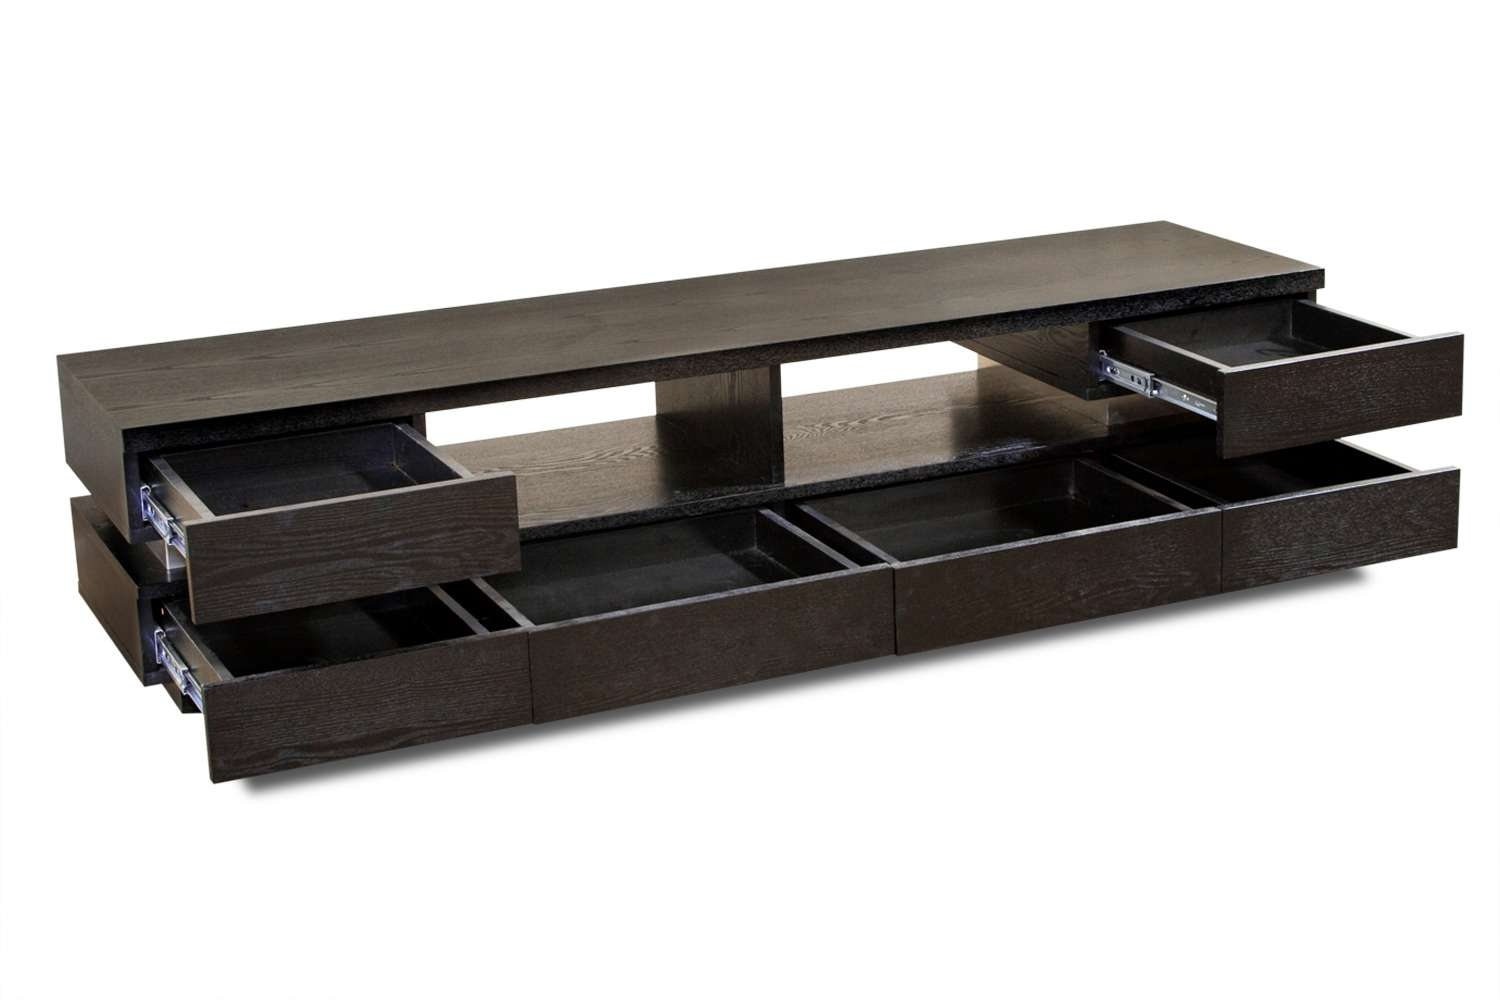 Custom Low Profile Tv Console Design With Drawer And Storage For Throughout Modern Low Tv Stands (View 11 of 20)